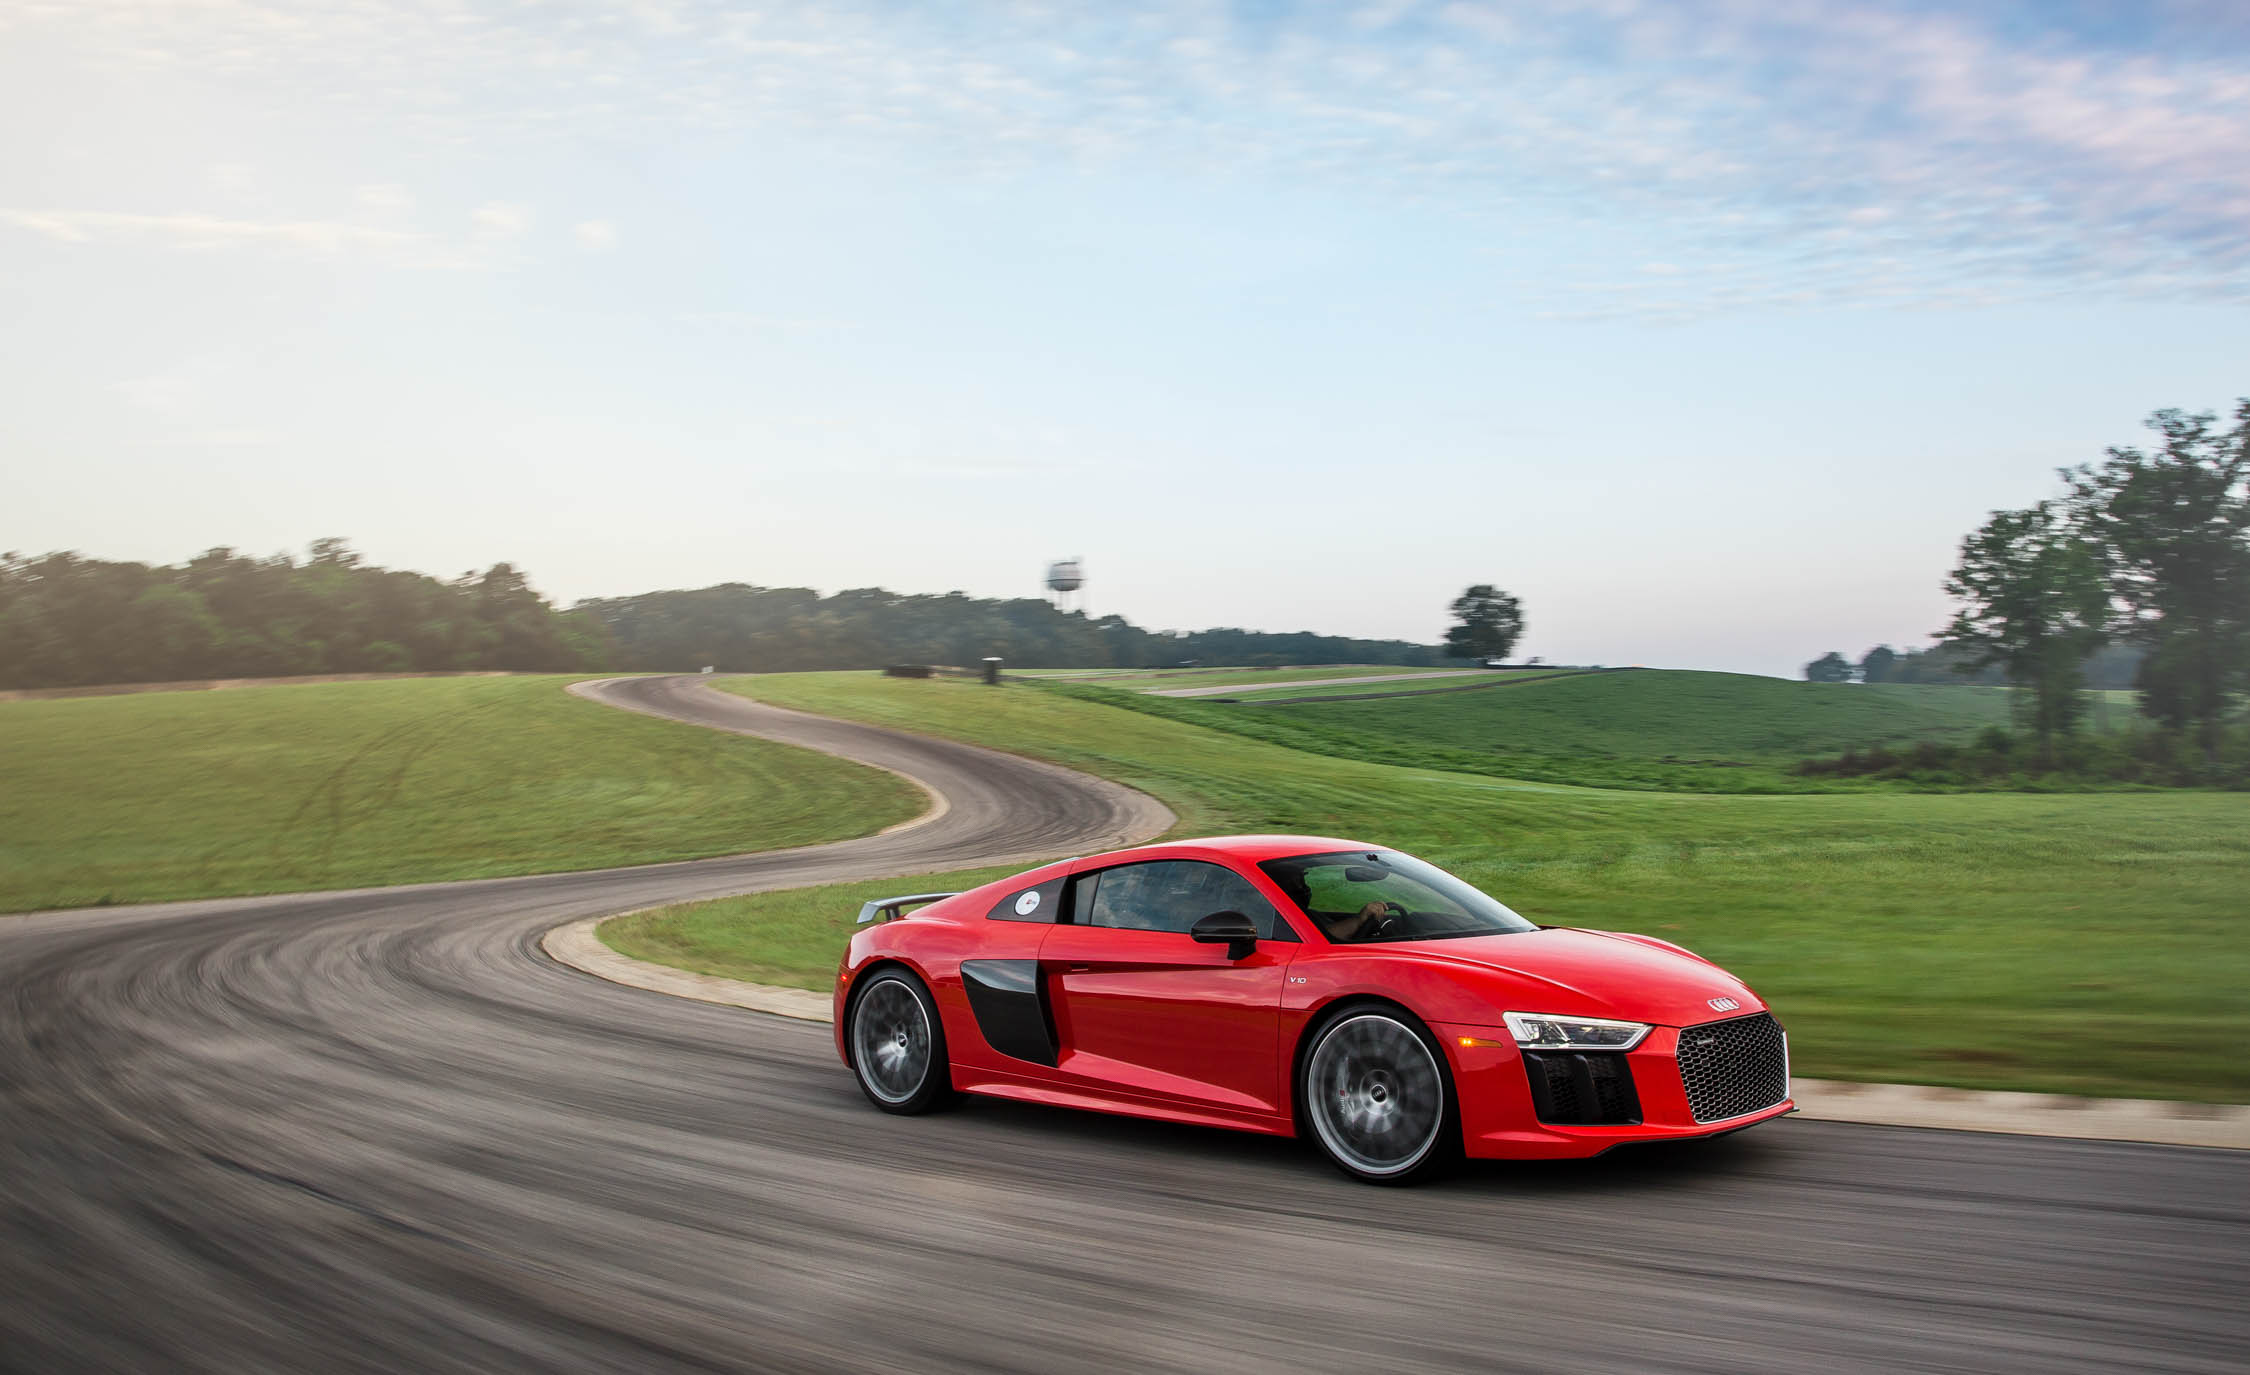 2017 Audi R8 V 10 Plus (Photo 19 of 19)